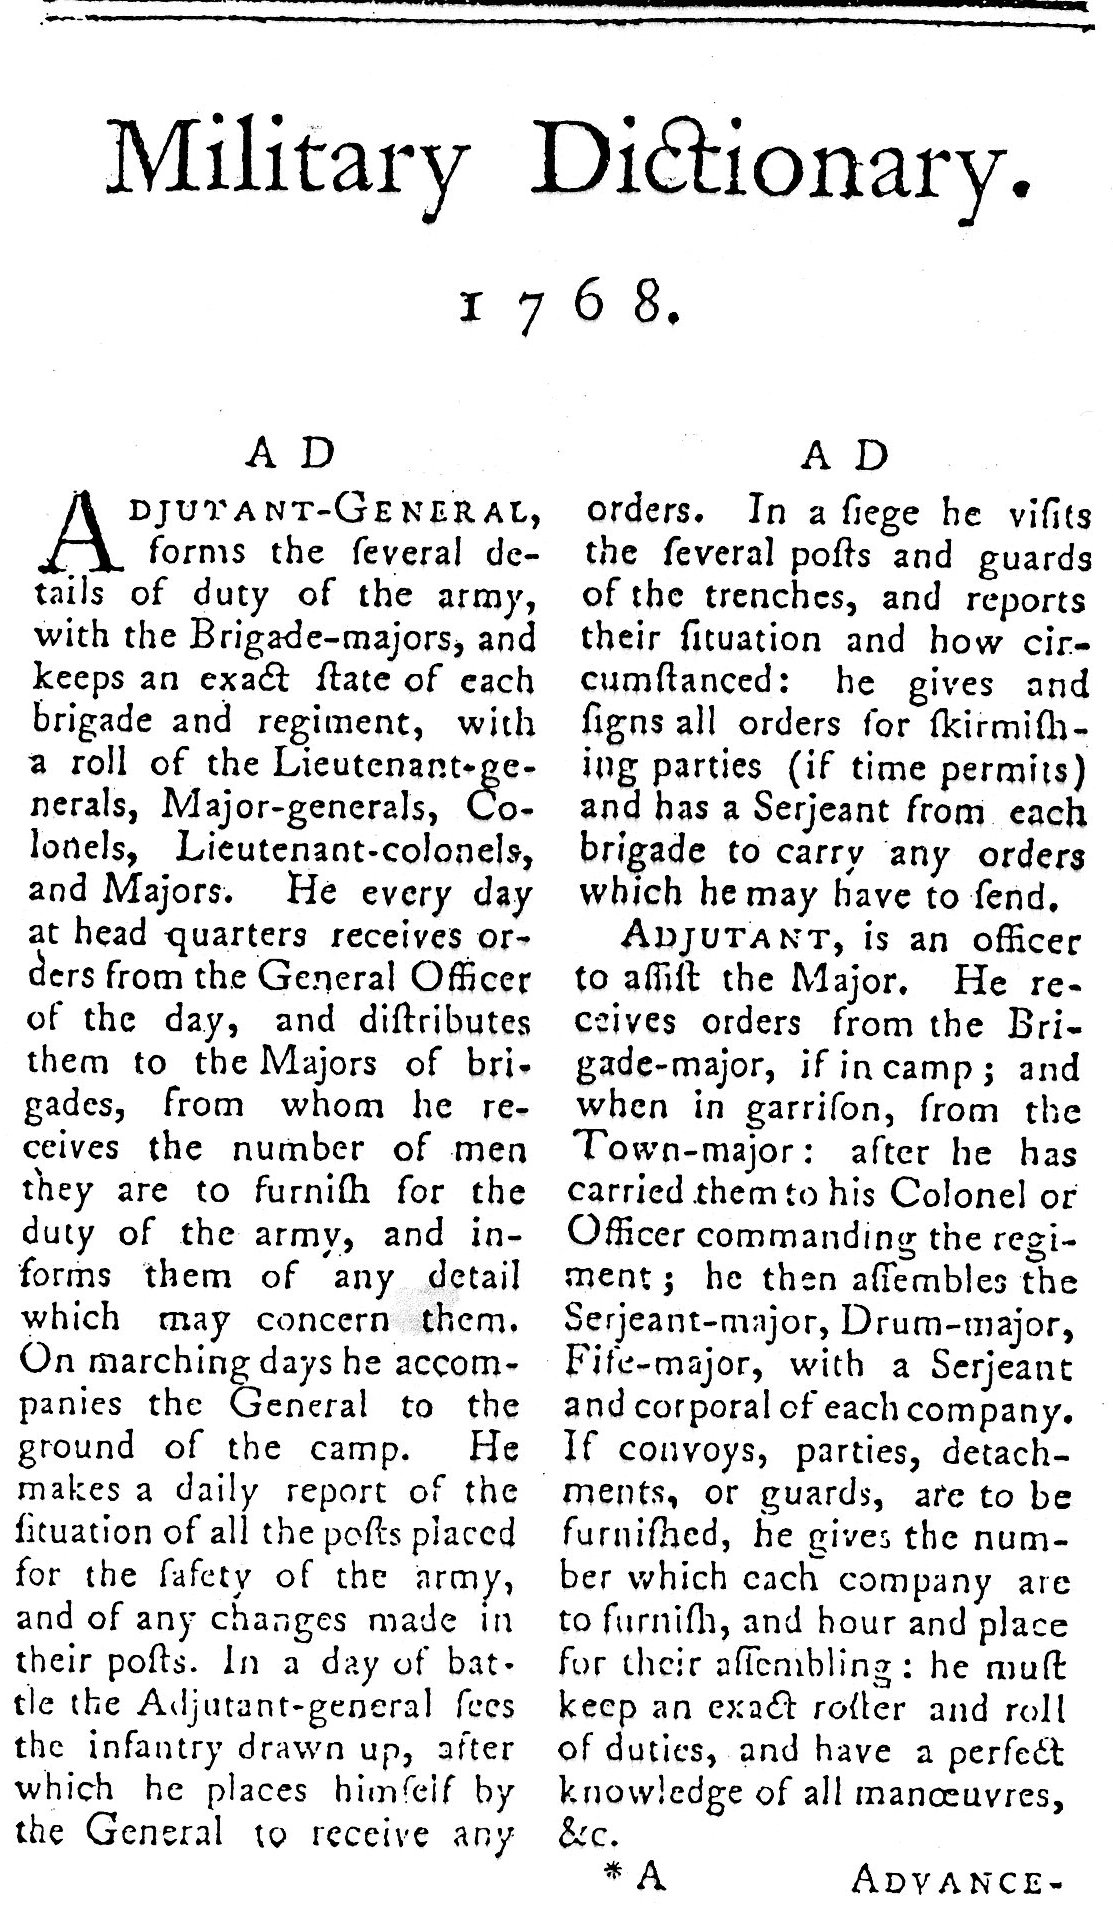 The Military Dictionary of 1768